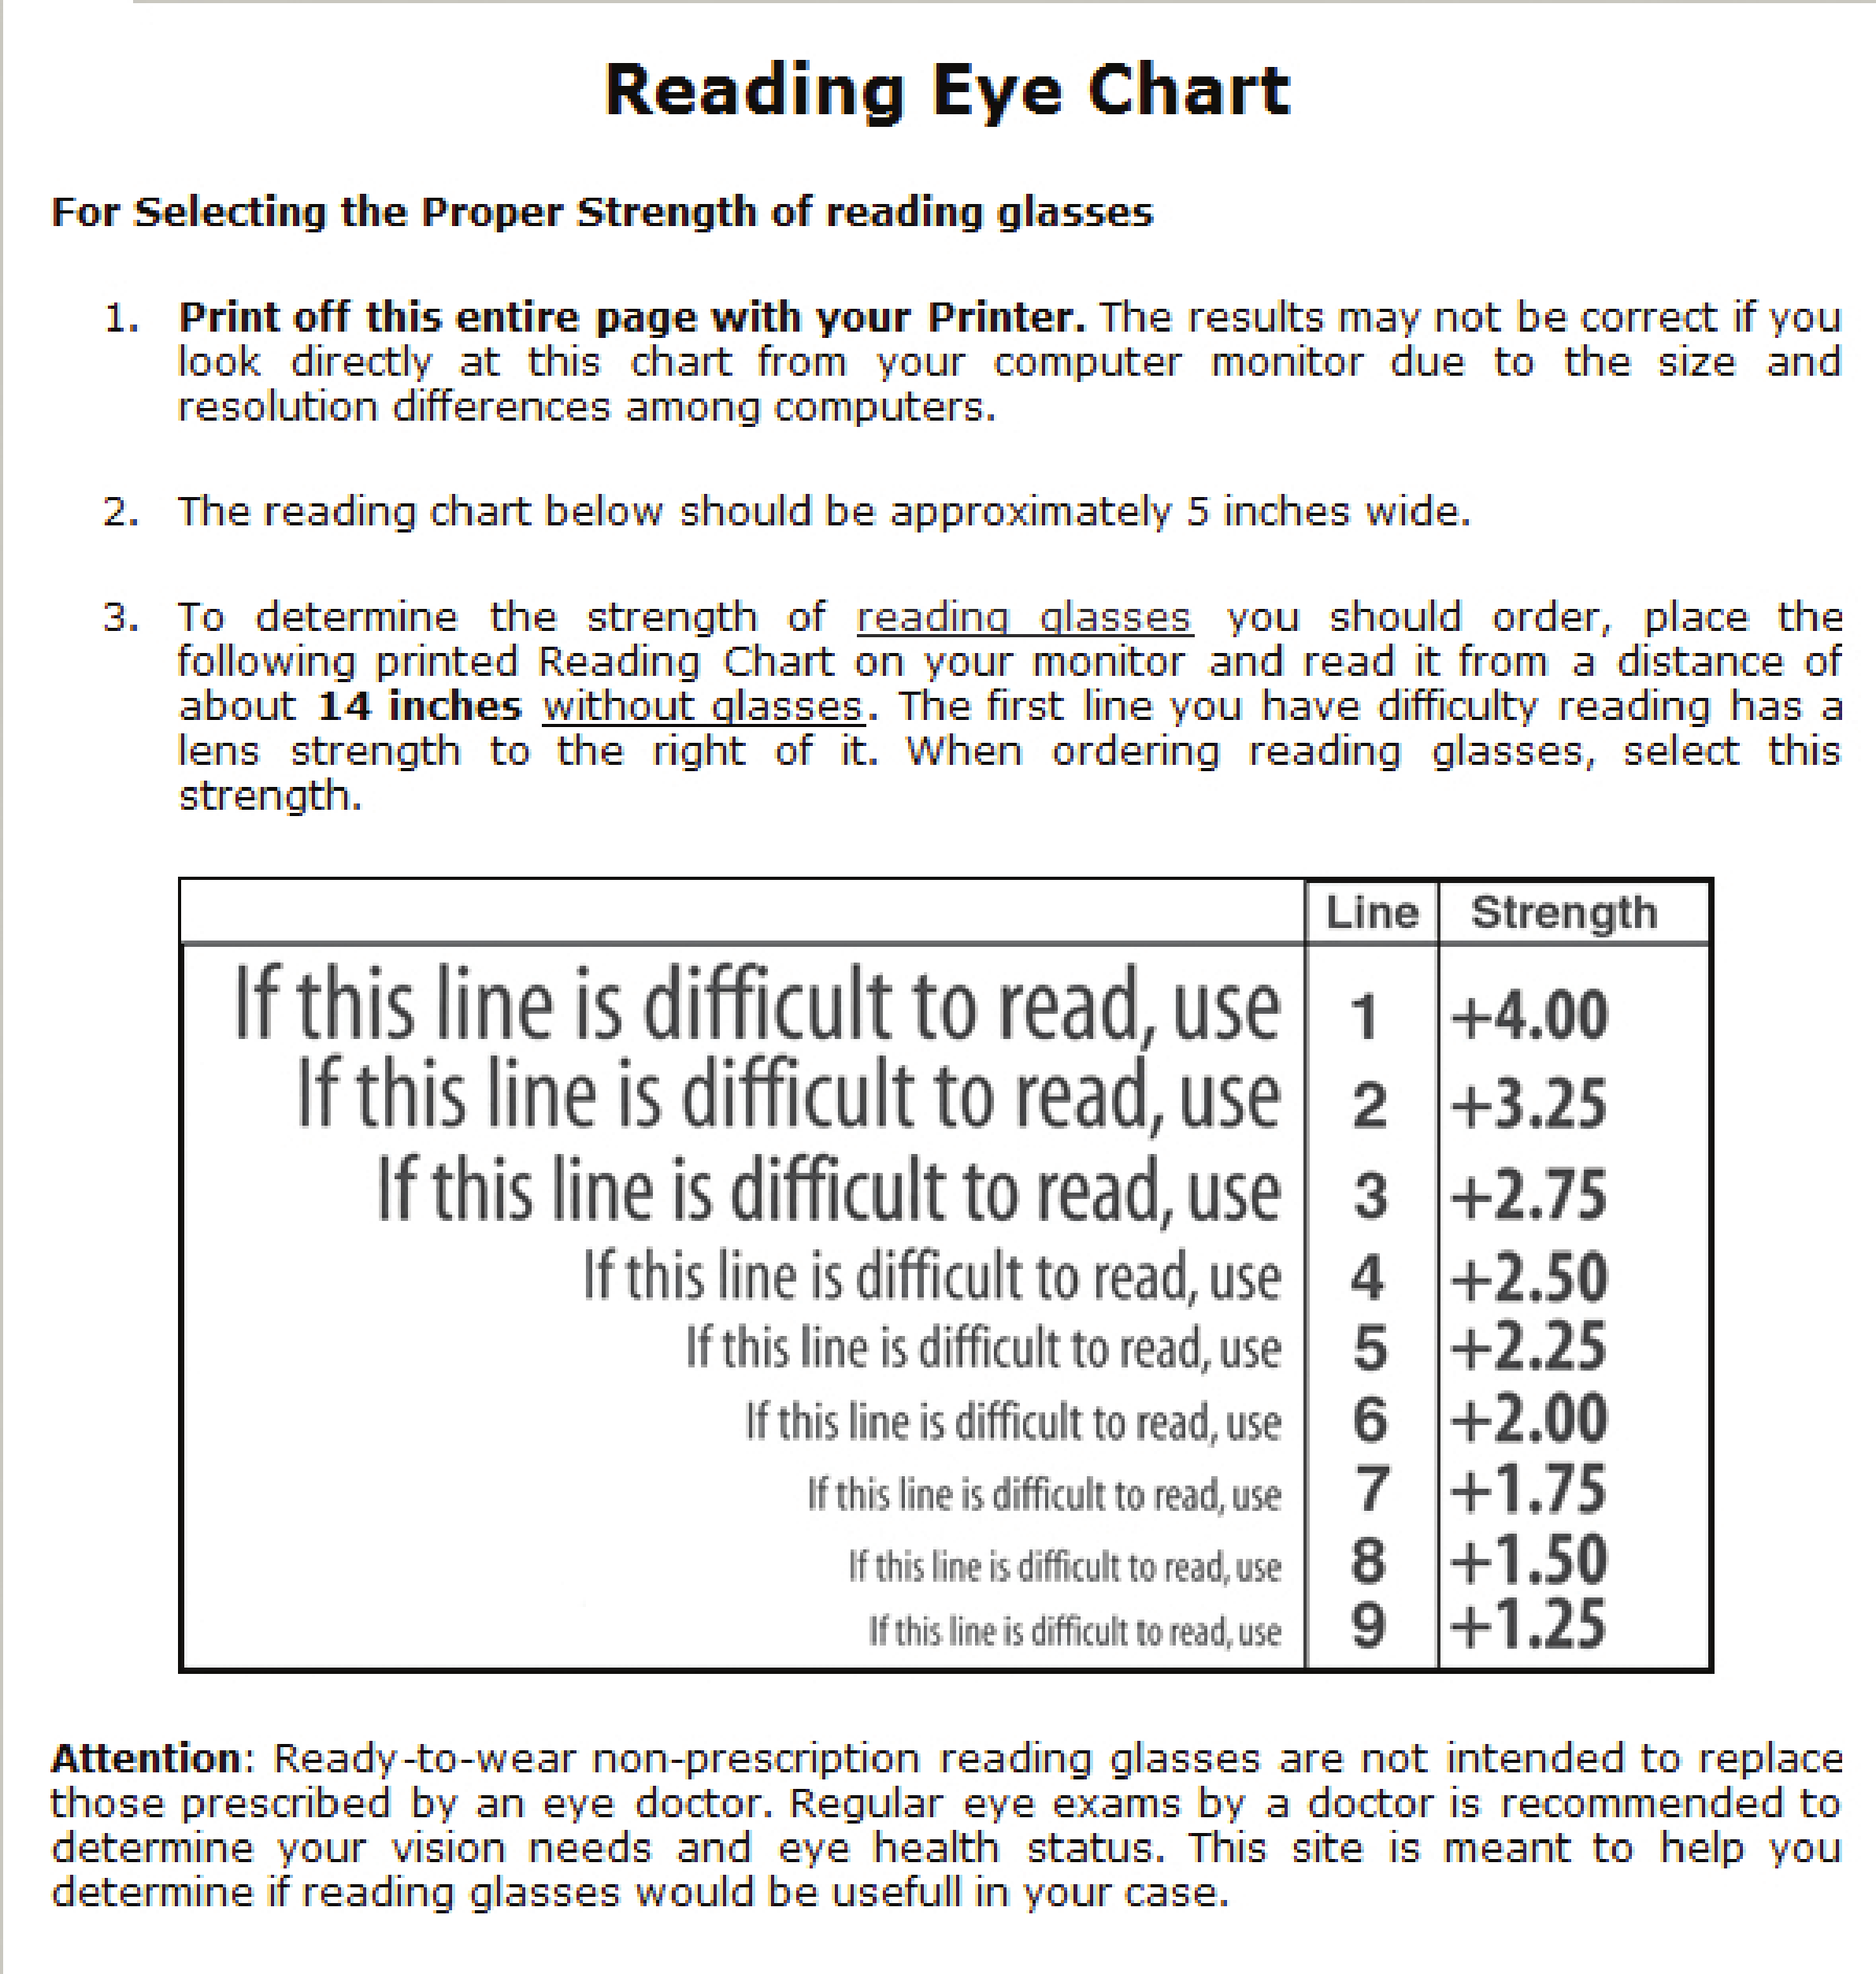 Reading eye chart free download 1 reading eye chart page 11 geenschuldenfo Choice Image